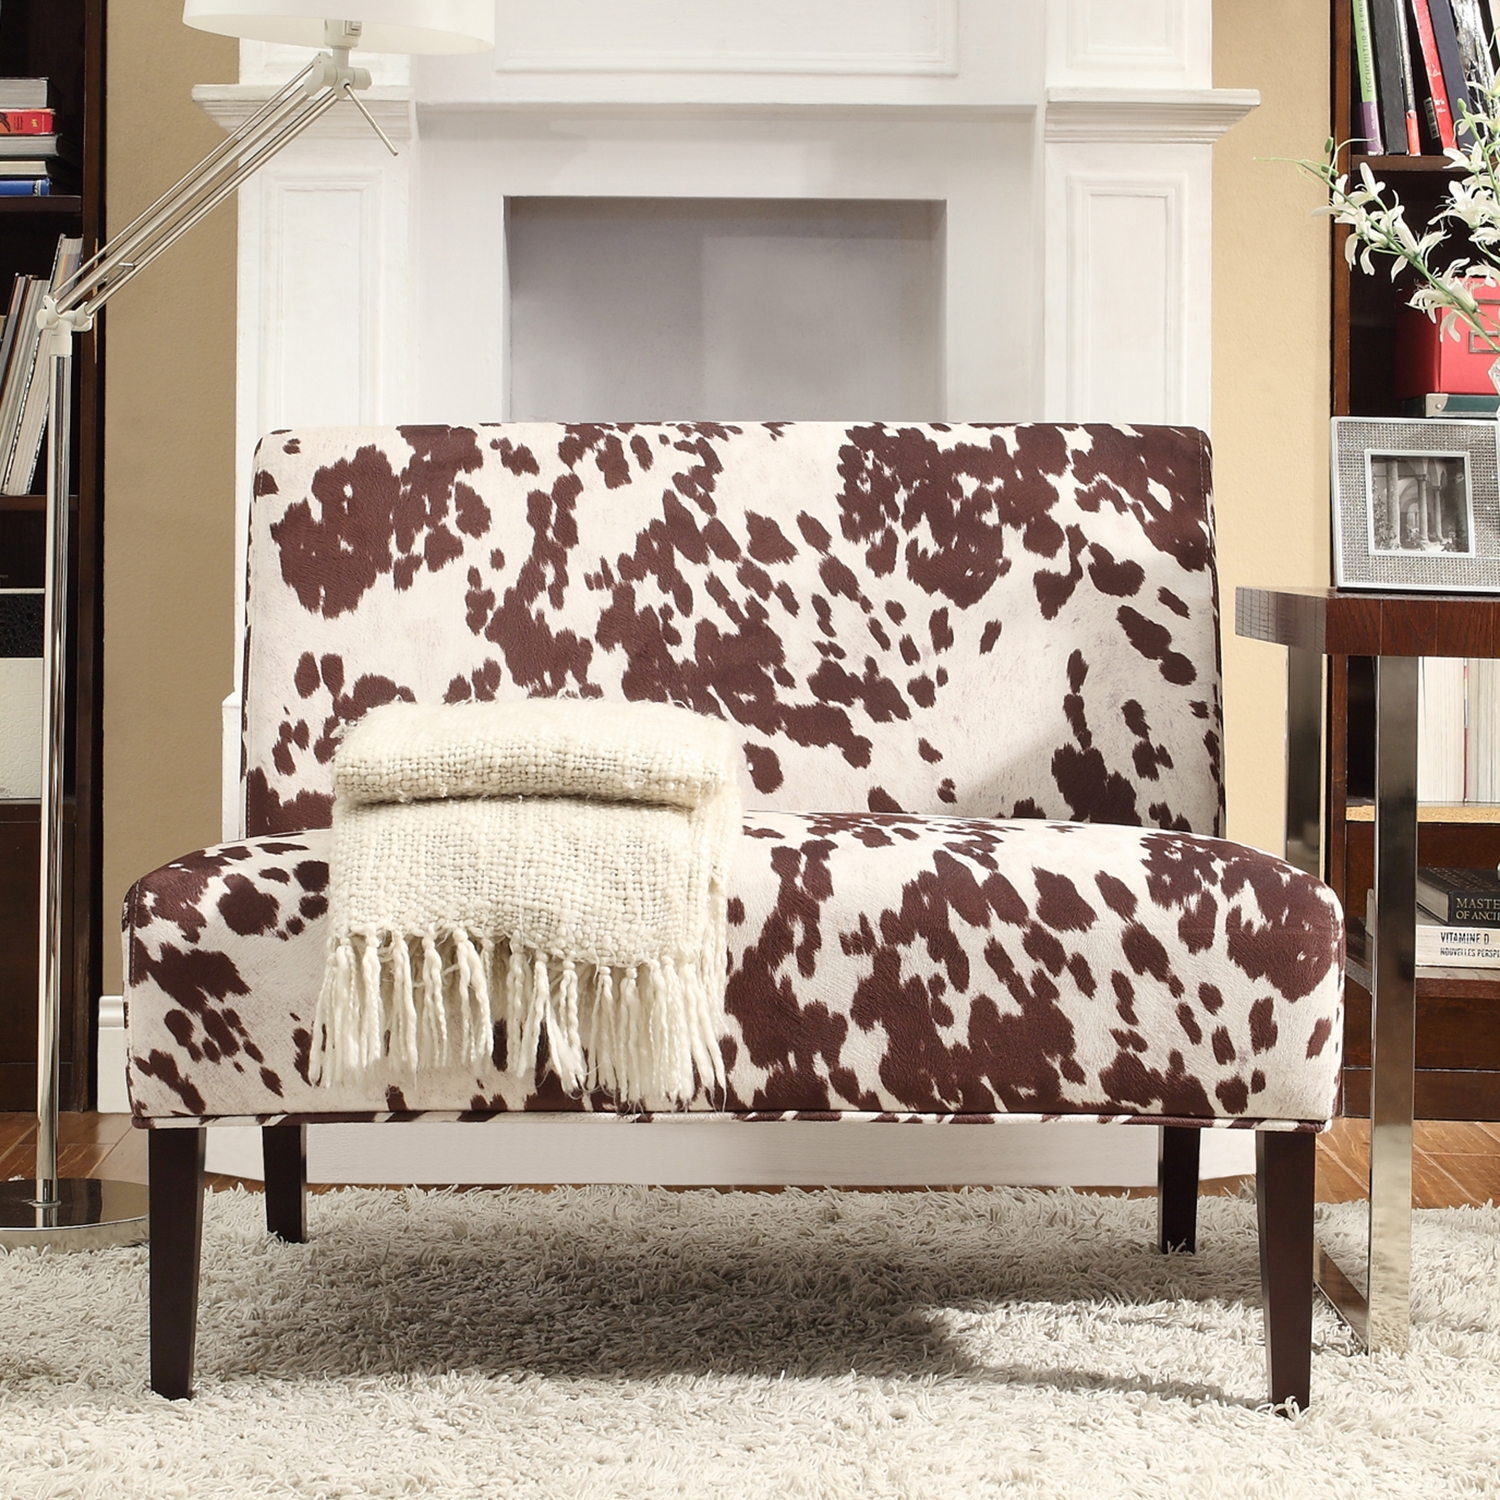 Luxury Cow Print Couch 23 With Additional Office Sofa Ideas